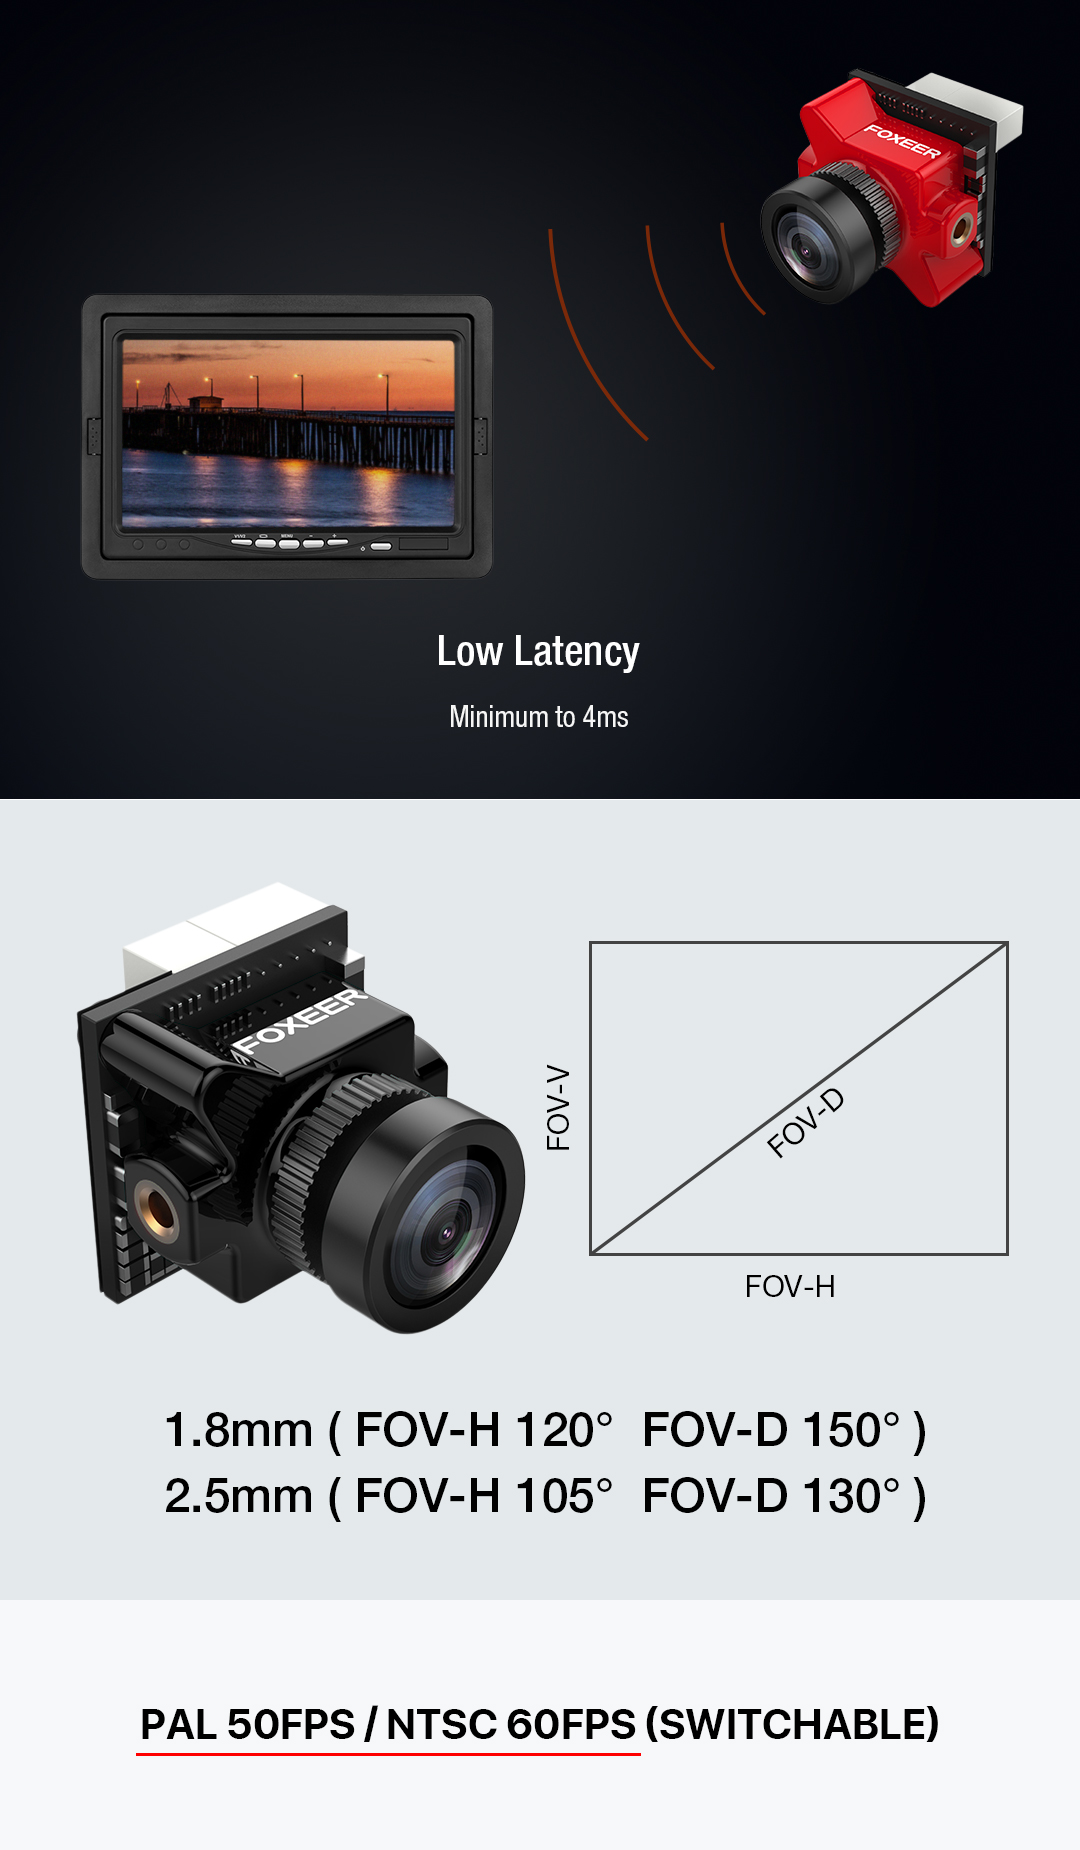 Foxeer Predator Micro V3 1.8mm 16:9/4:3 PAL/NTSC Switchable Super WDR 4ms Latency OSD FPV Camera